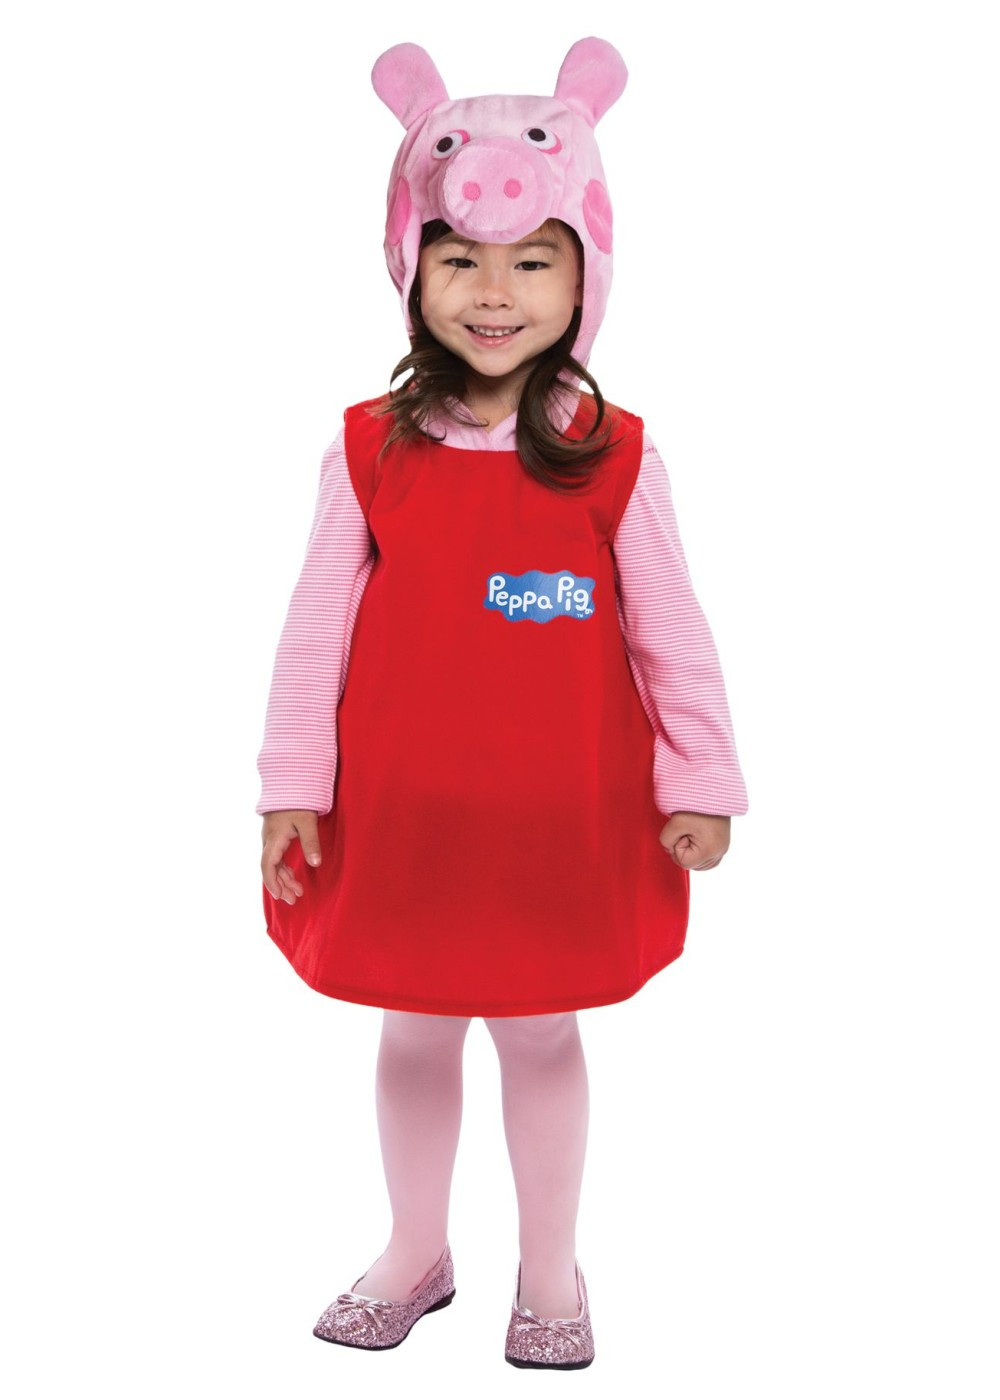 Best ideas about Peppa Pig Costume DIY . Save or Pin Toddler Peppa Pig Dress Costume TV Show Costumes Now.